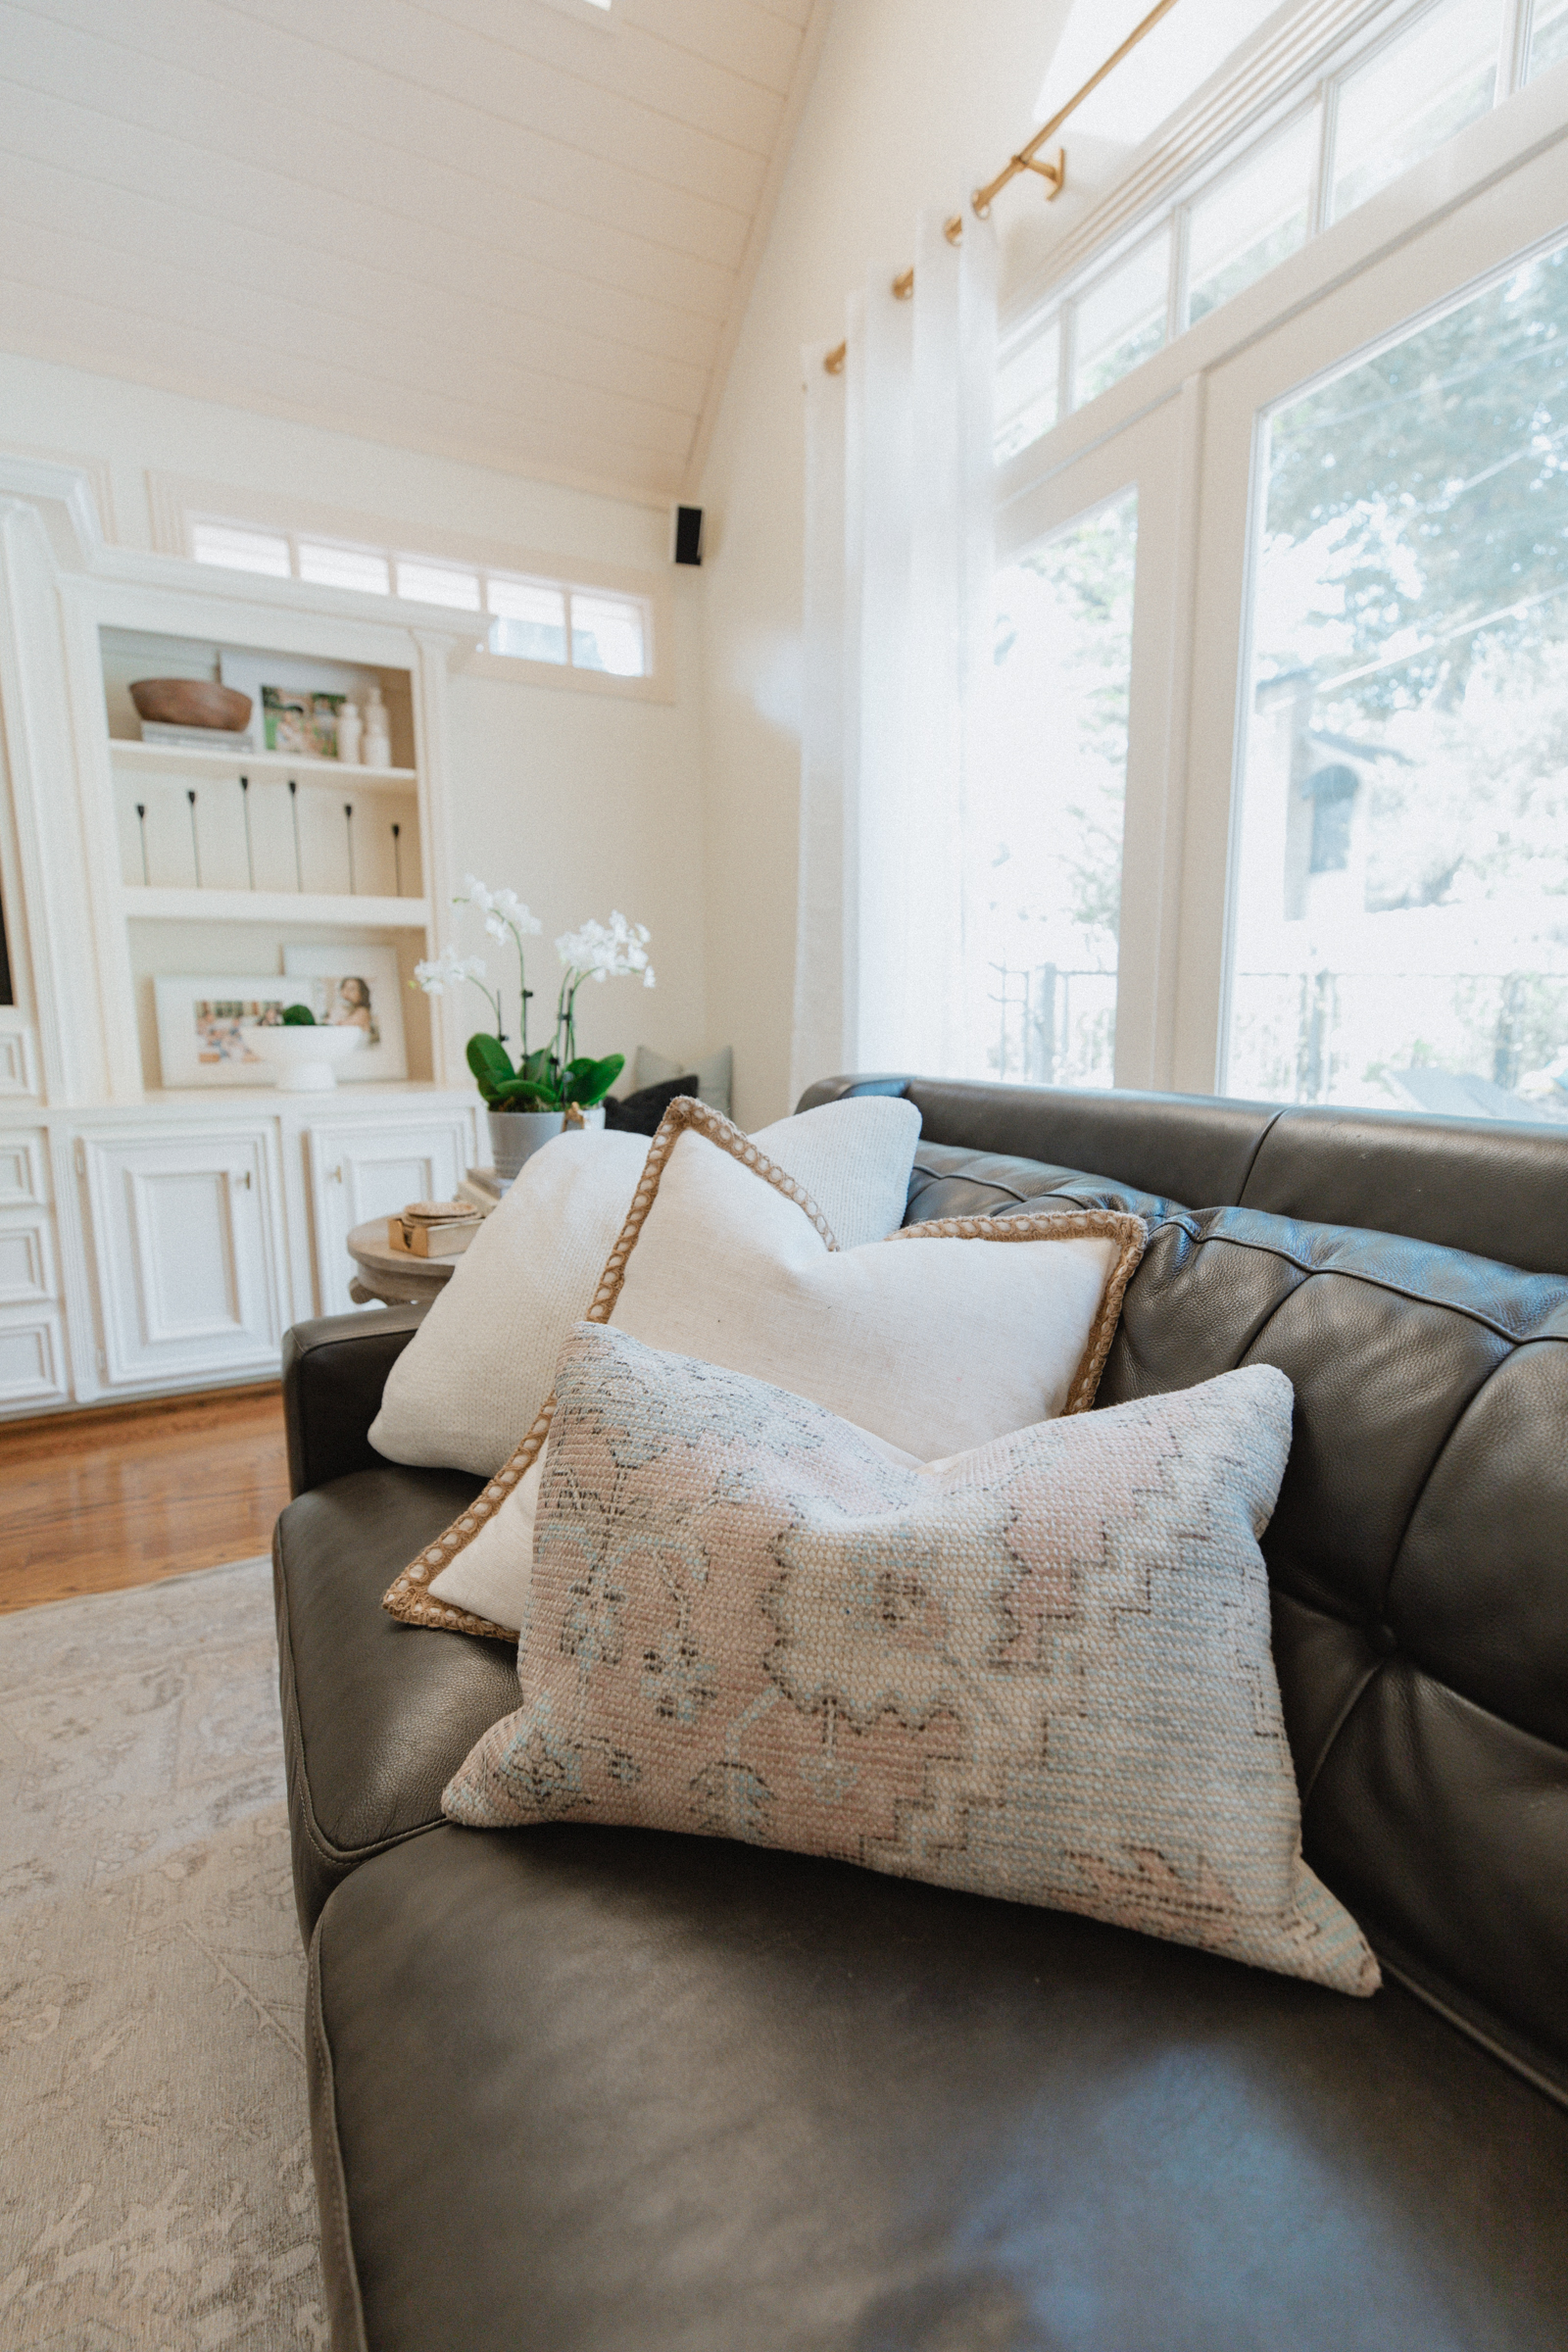 Three decorative pillows on leather couch part of wayfair living room reveal